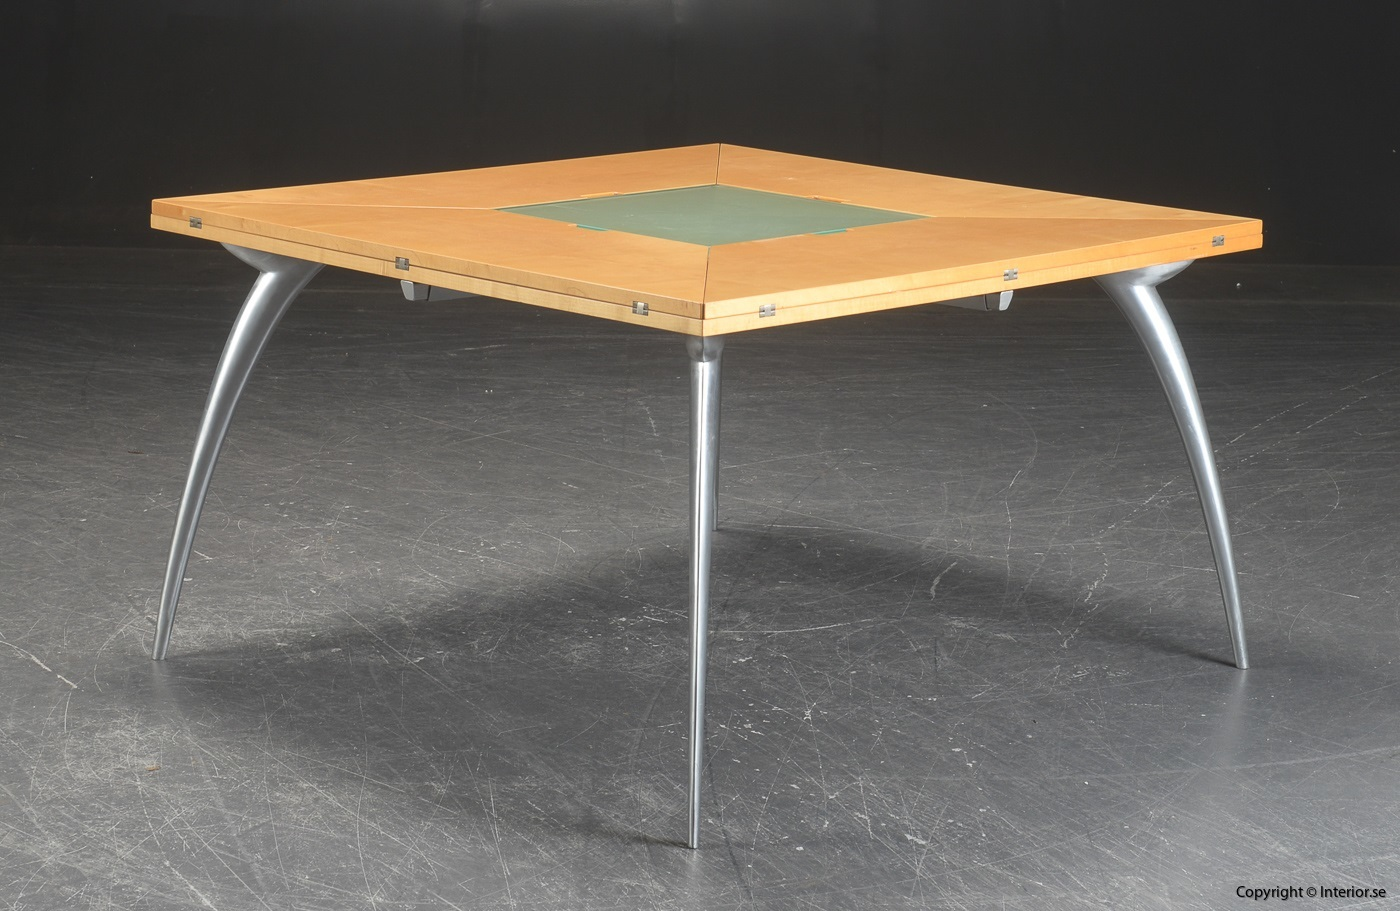 Table with foldable table tops, Tranekaer Cirkante + Magis Gran Tucano 5